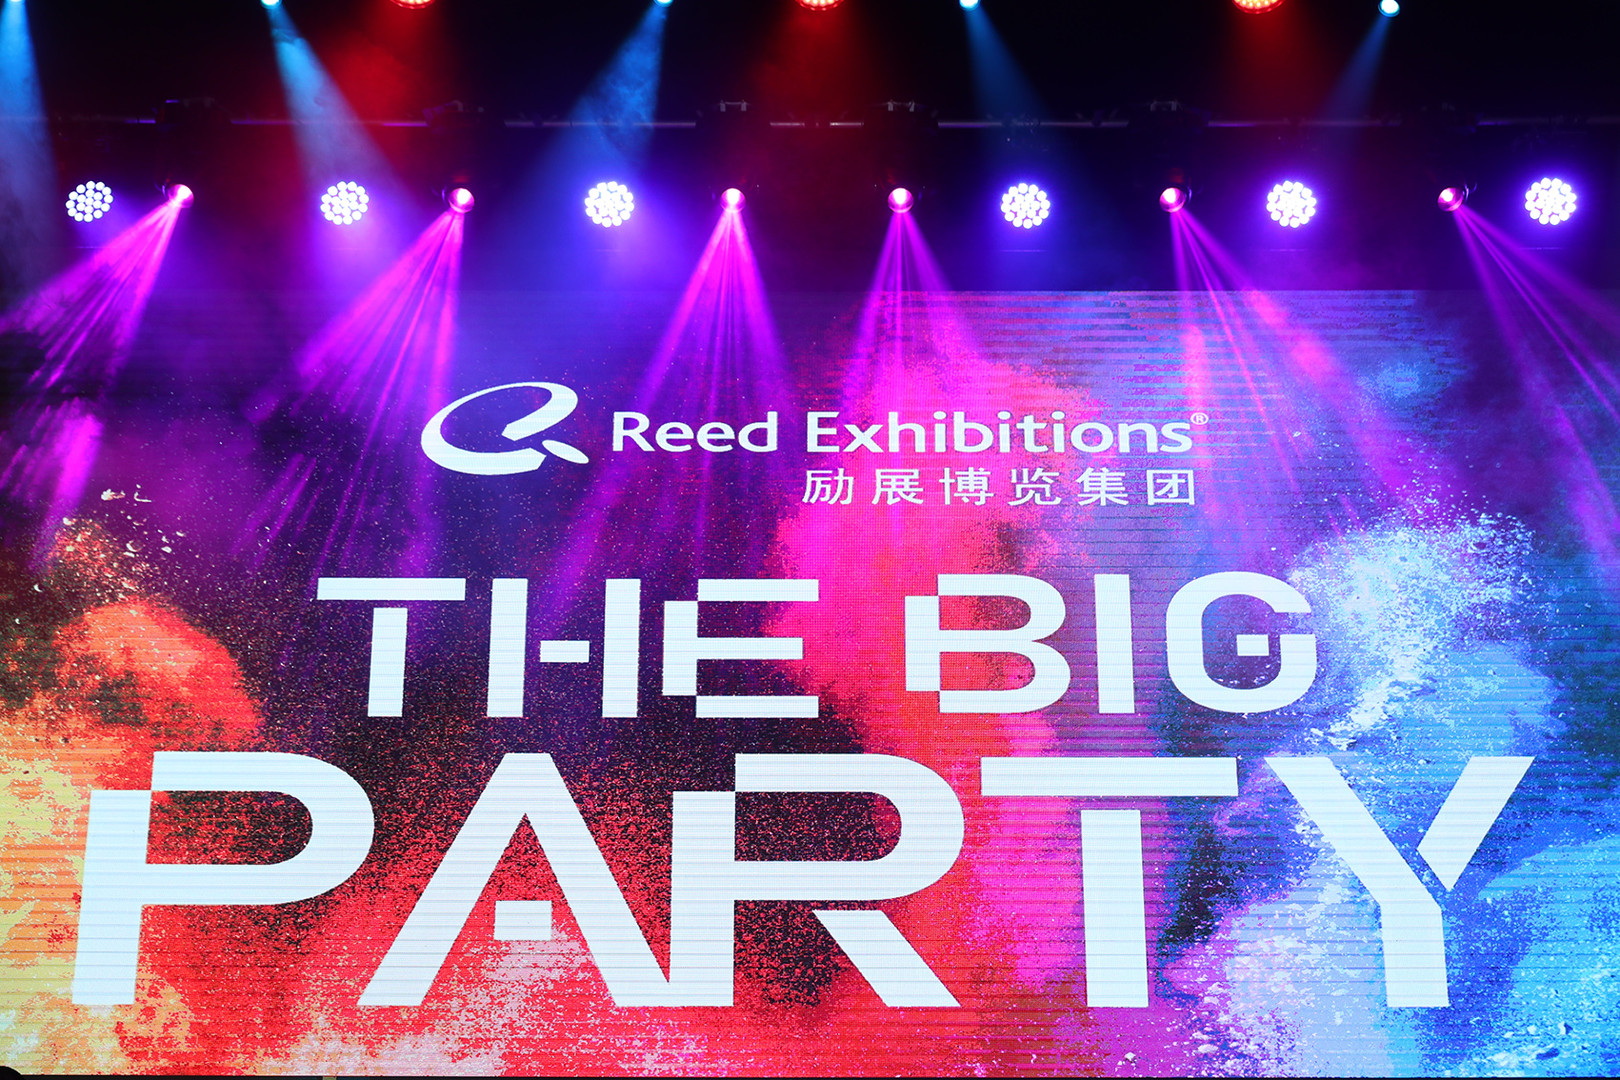 handskiosk - RX big party 01.jpg